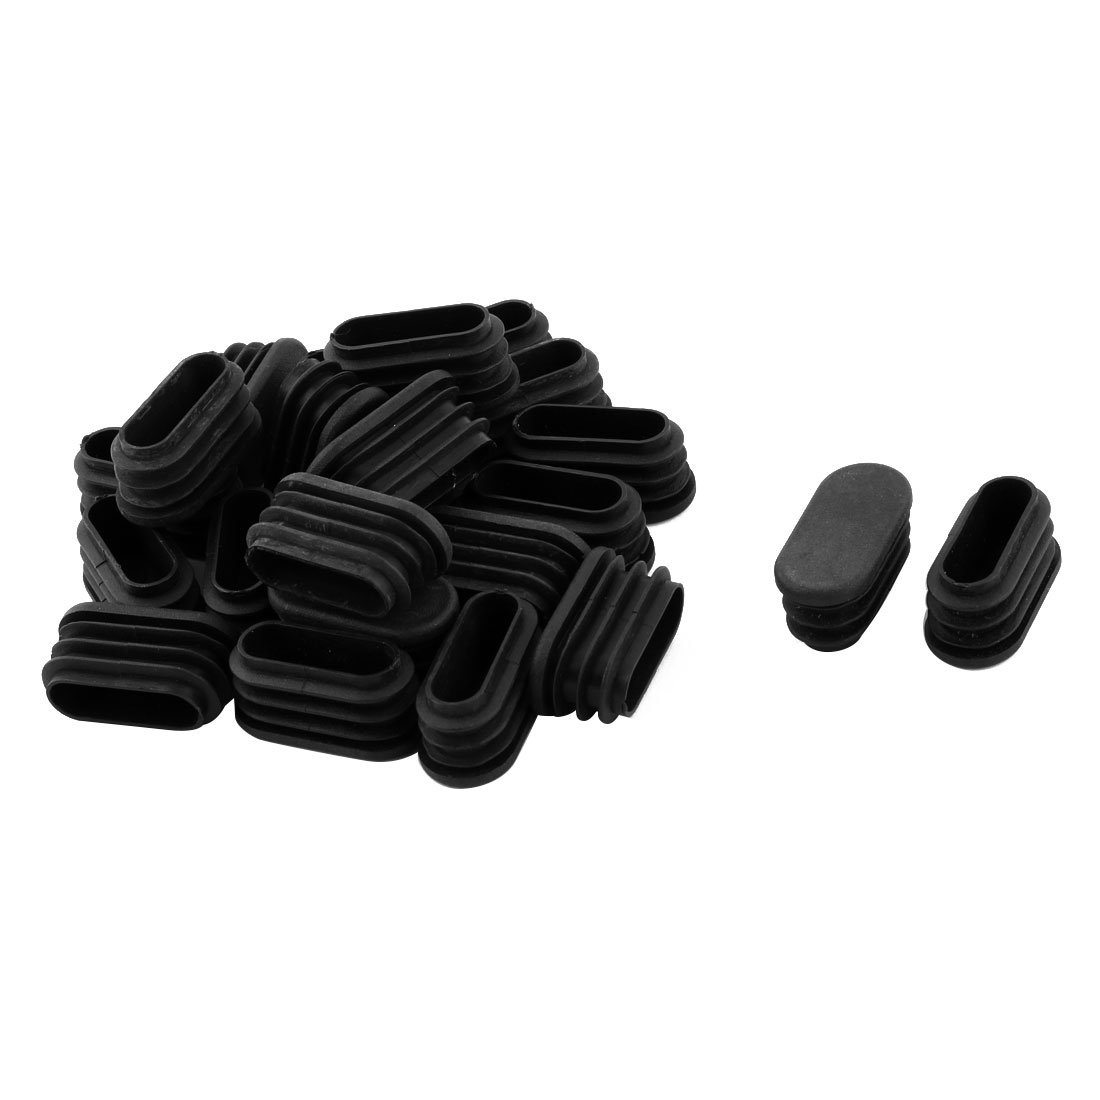 Uxcell Plastic Tube Inserts Oval Chair Table Leg Feet